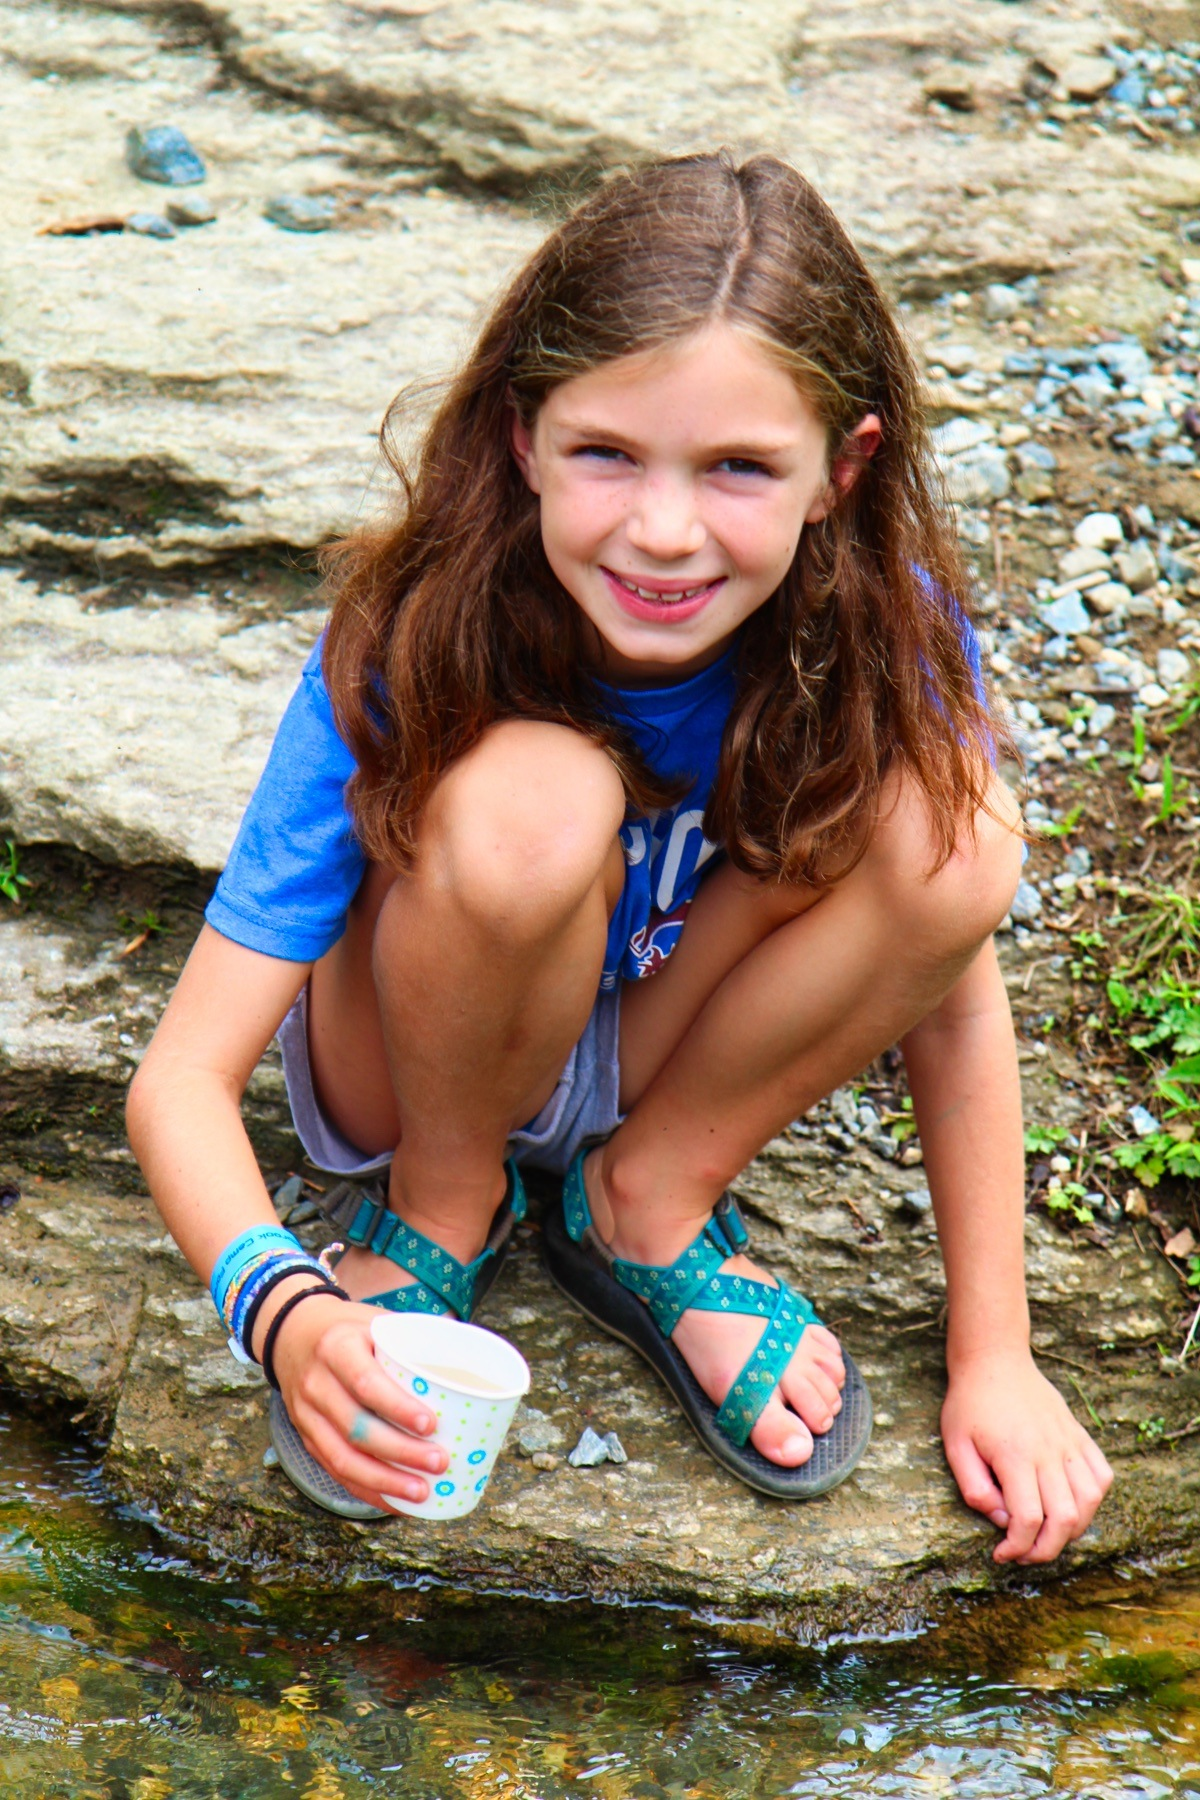 catching tadpoles at summer camp